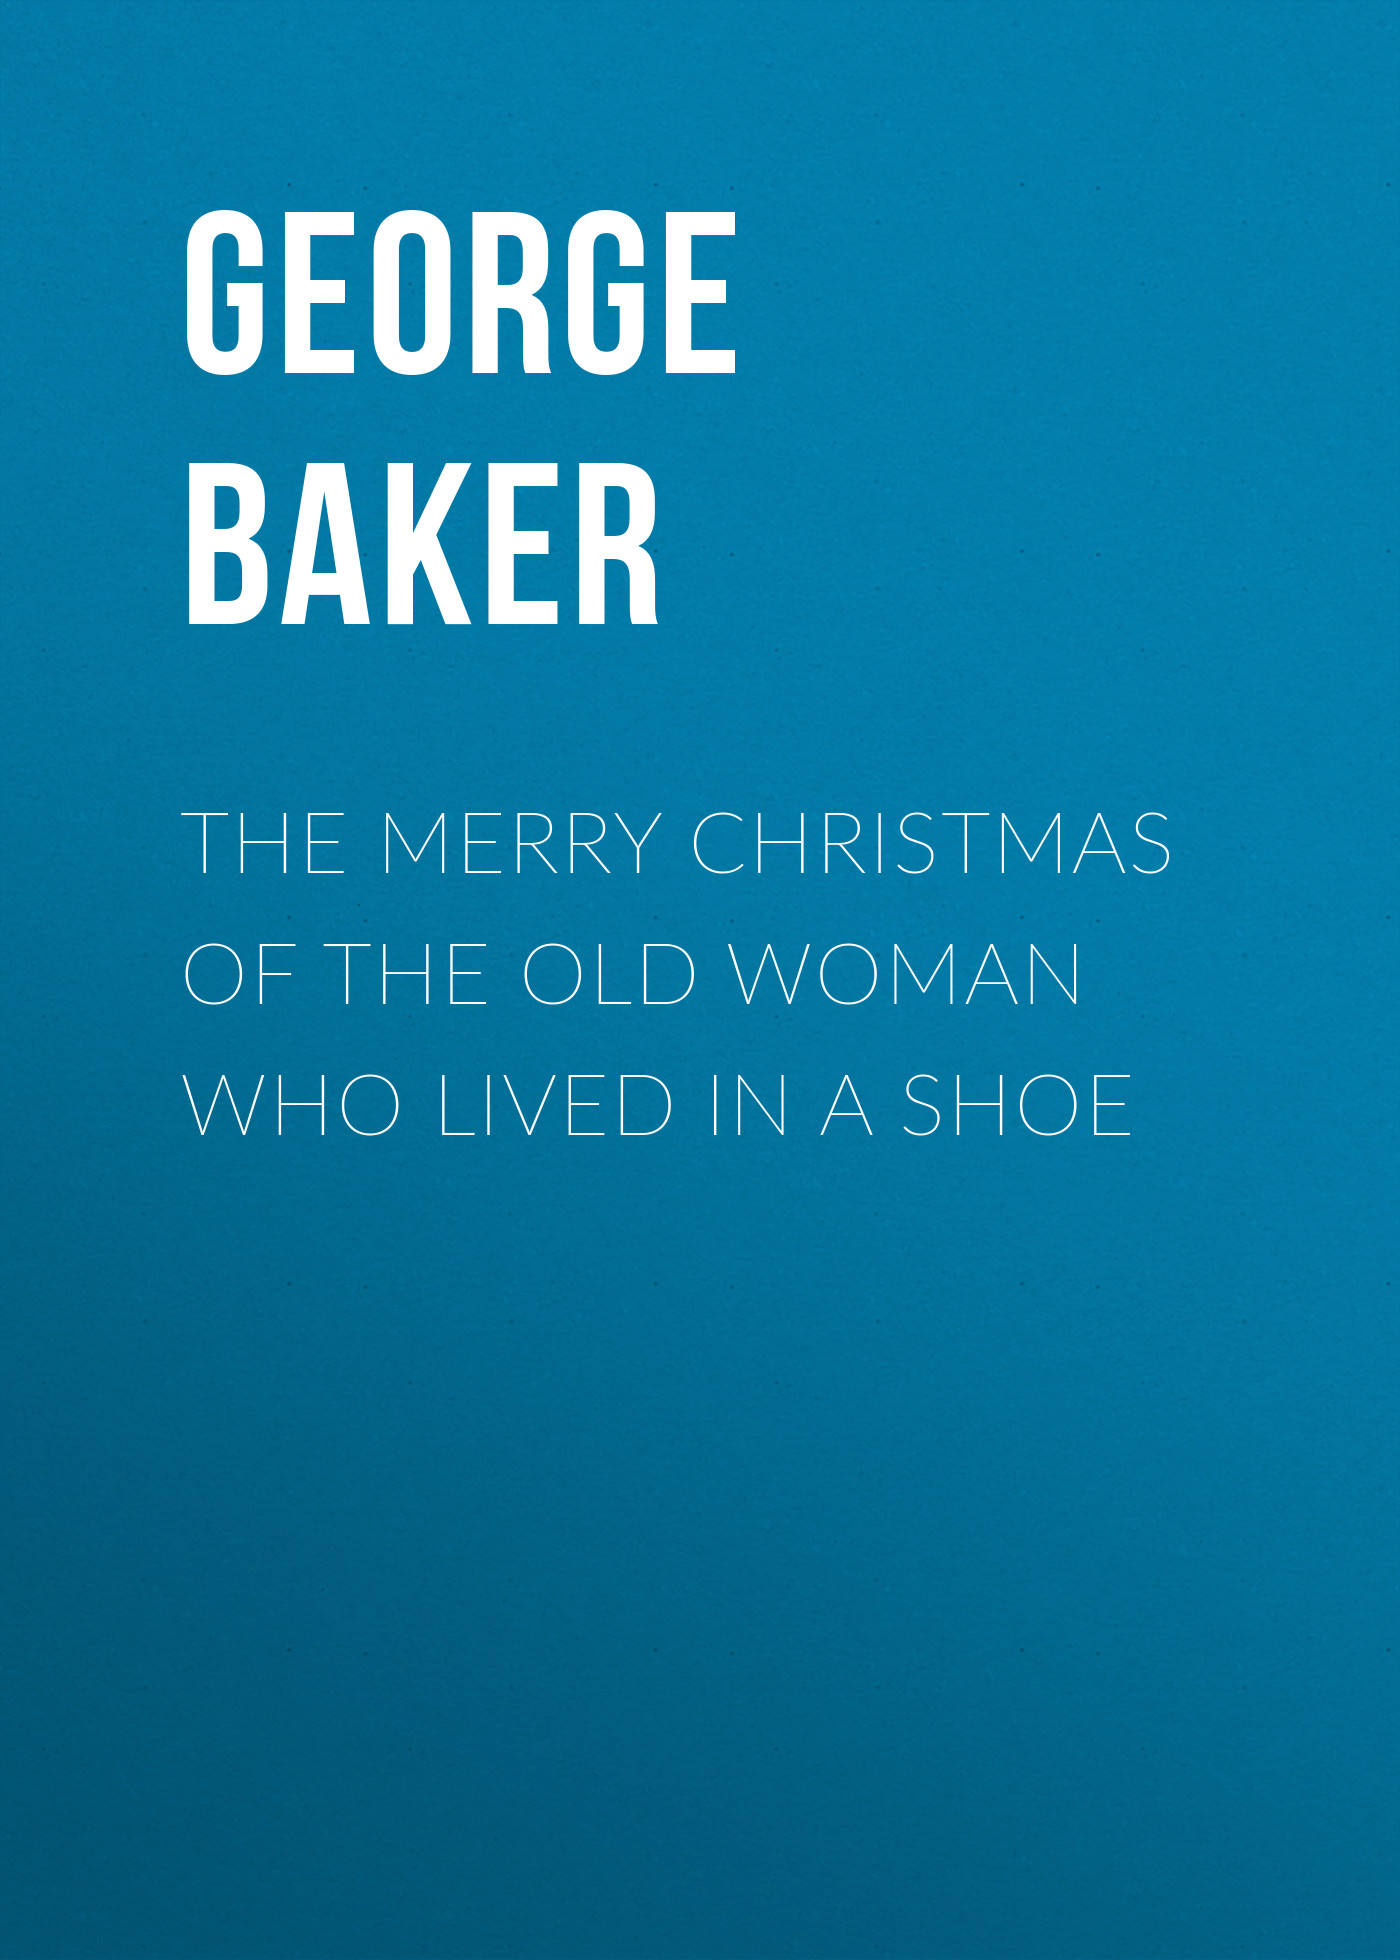 The Merry Christmas of the Old Woman who Lived in a Shoe